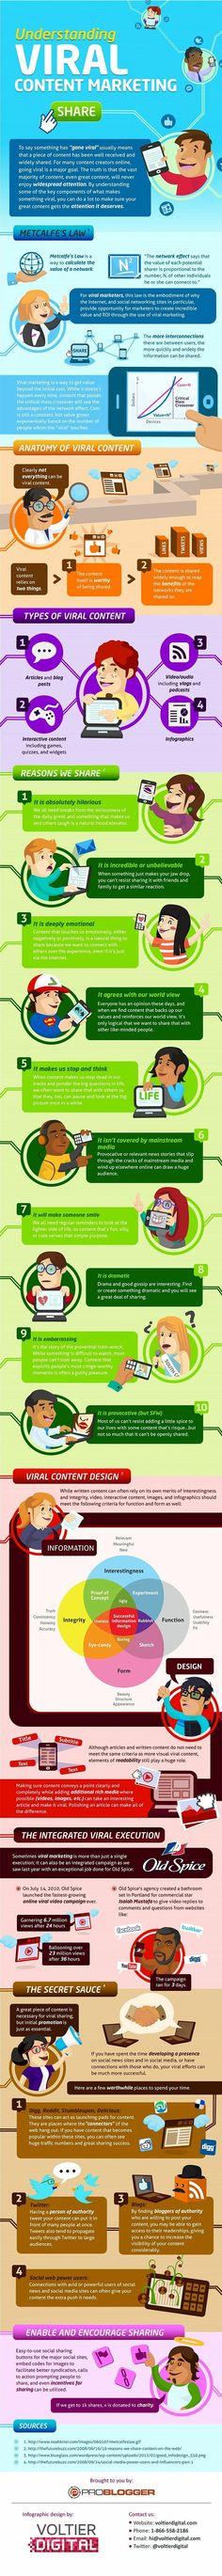 The secret sauce of viral content #Infographic